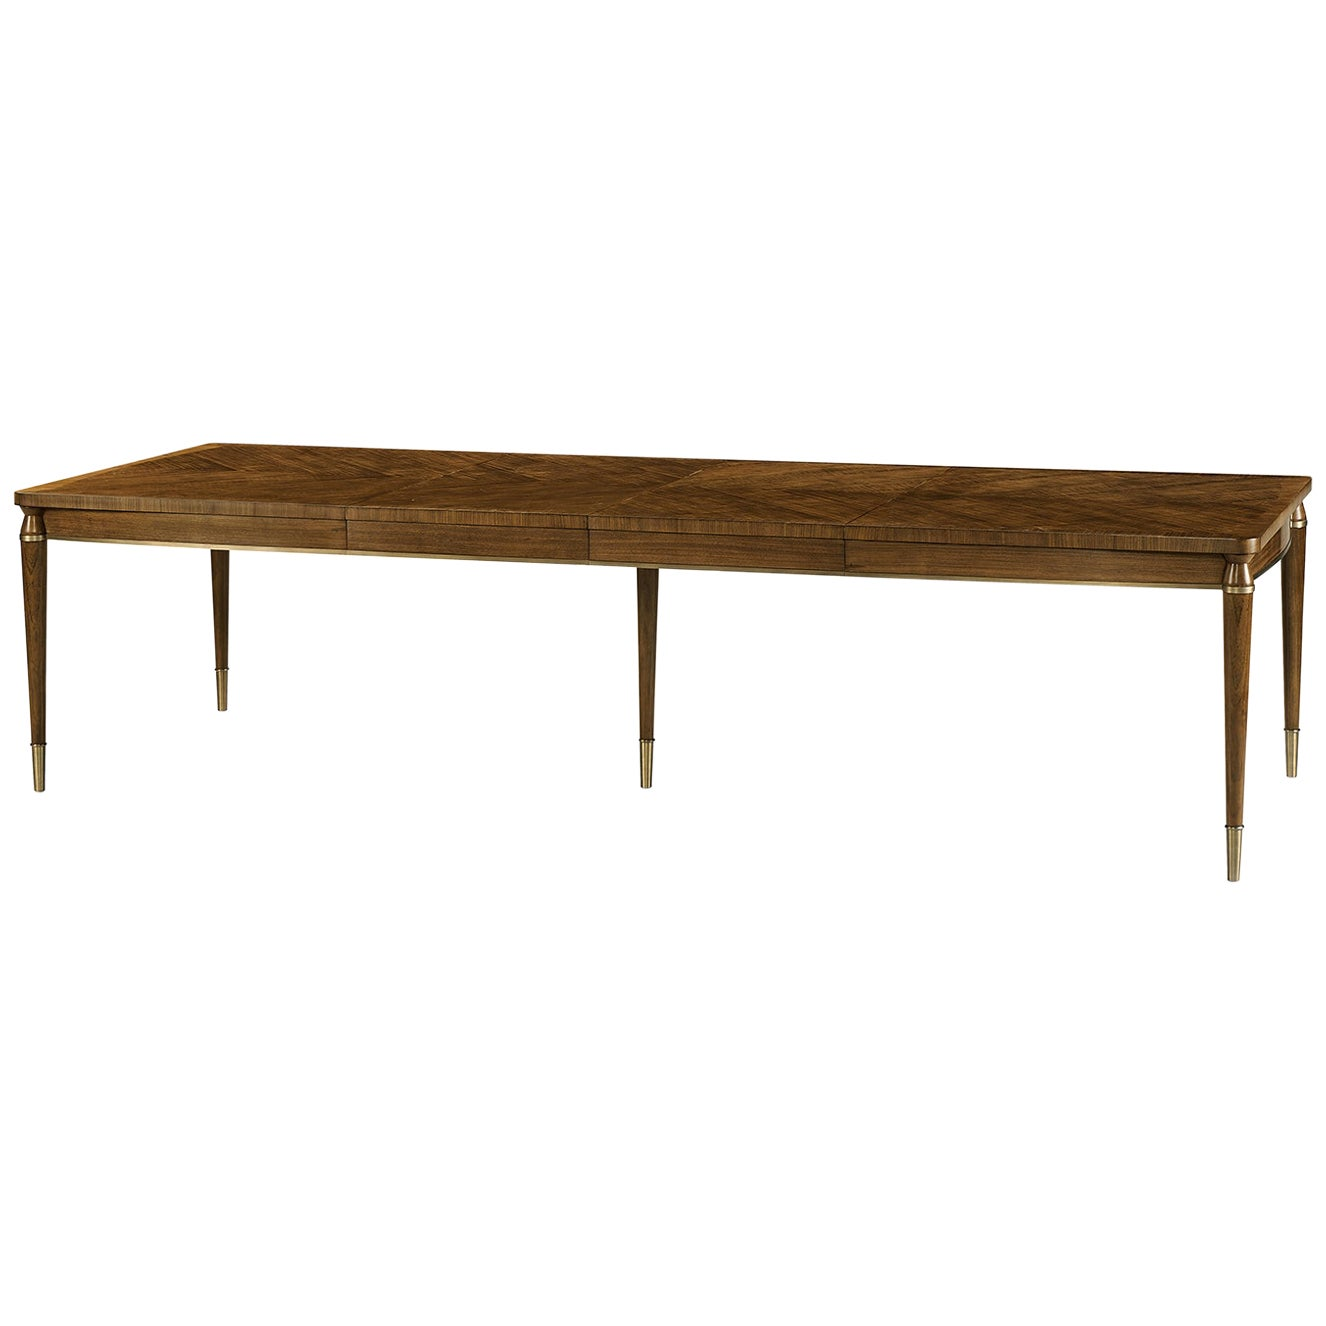 Mid-Century Modern Style Extending Dining Table